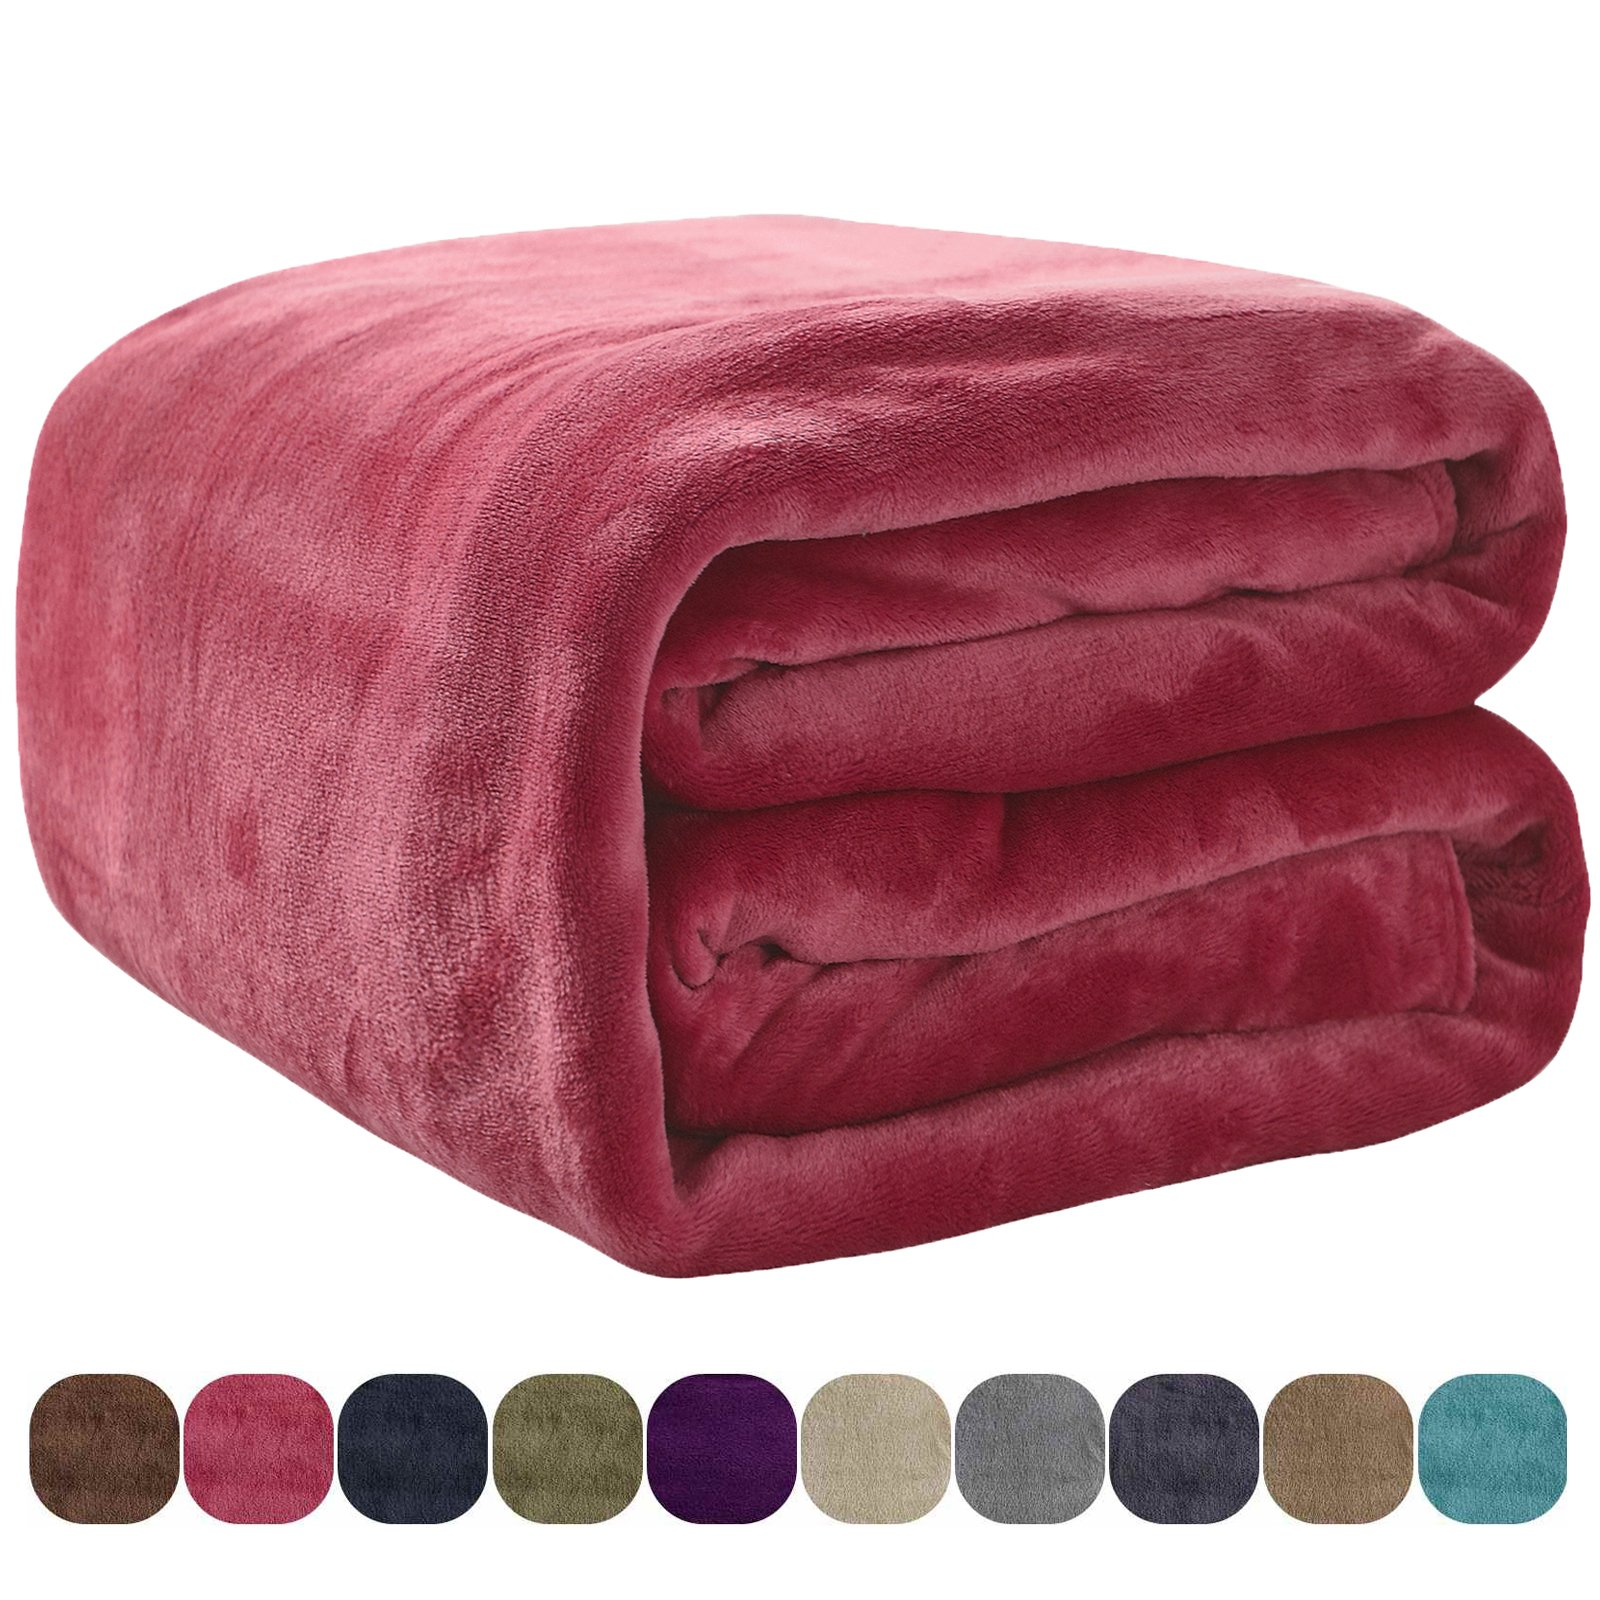 VEEYOO Flannel Fleece Bed Blanket Twin Size - All Seasons Lightweight Luxury Plush Microfiber Blankets for Bed Couch Sofa, Red